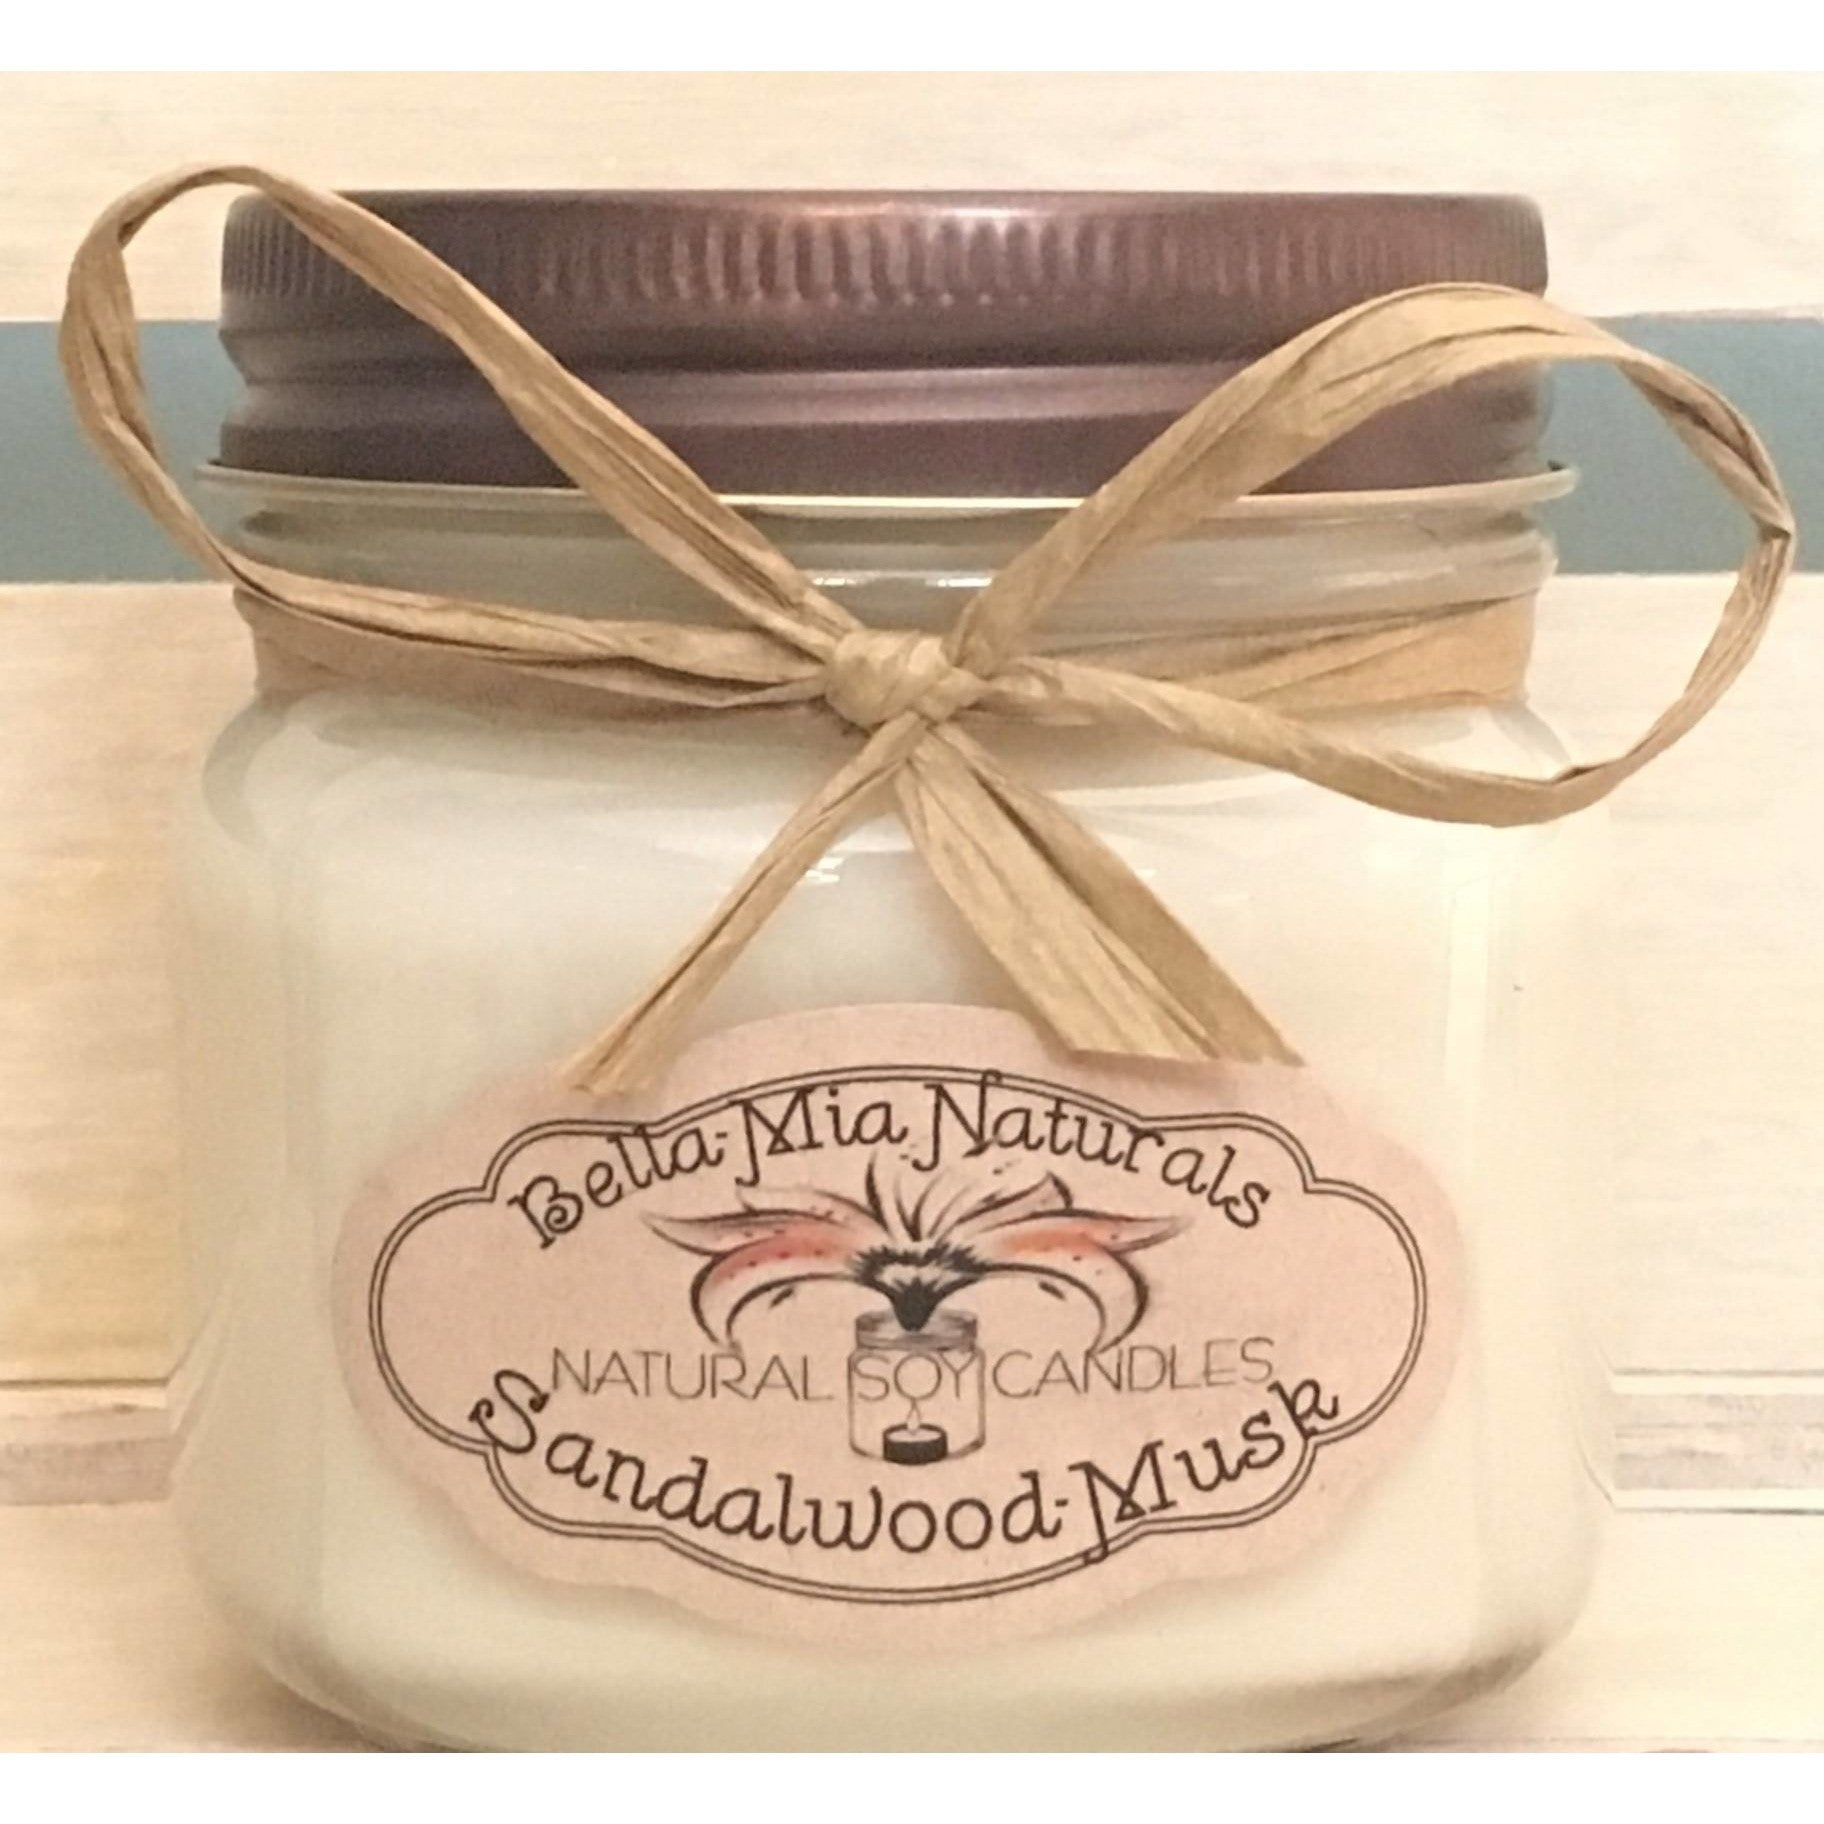 Sandlewood-Musk Natural Hand Poured Soy Candles & Melts - Half-Pint - Bella-Mia Naturals All Natural Soy Candles & Lip Balms - 3